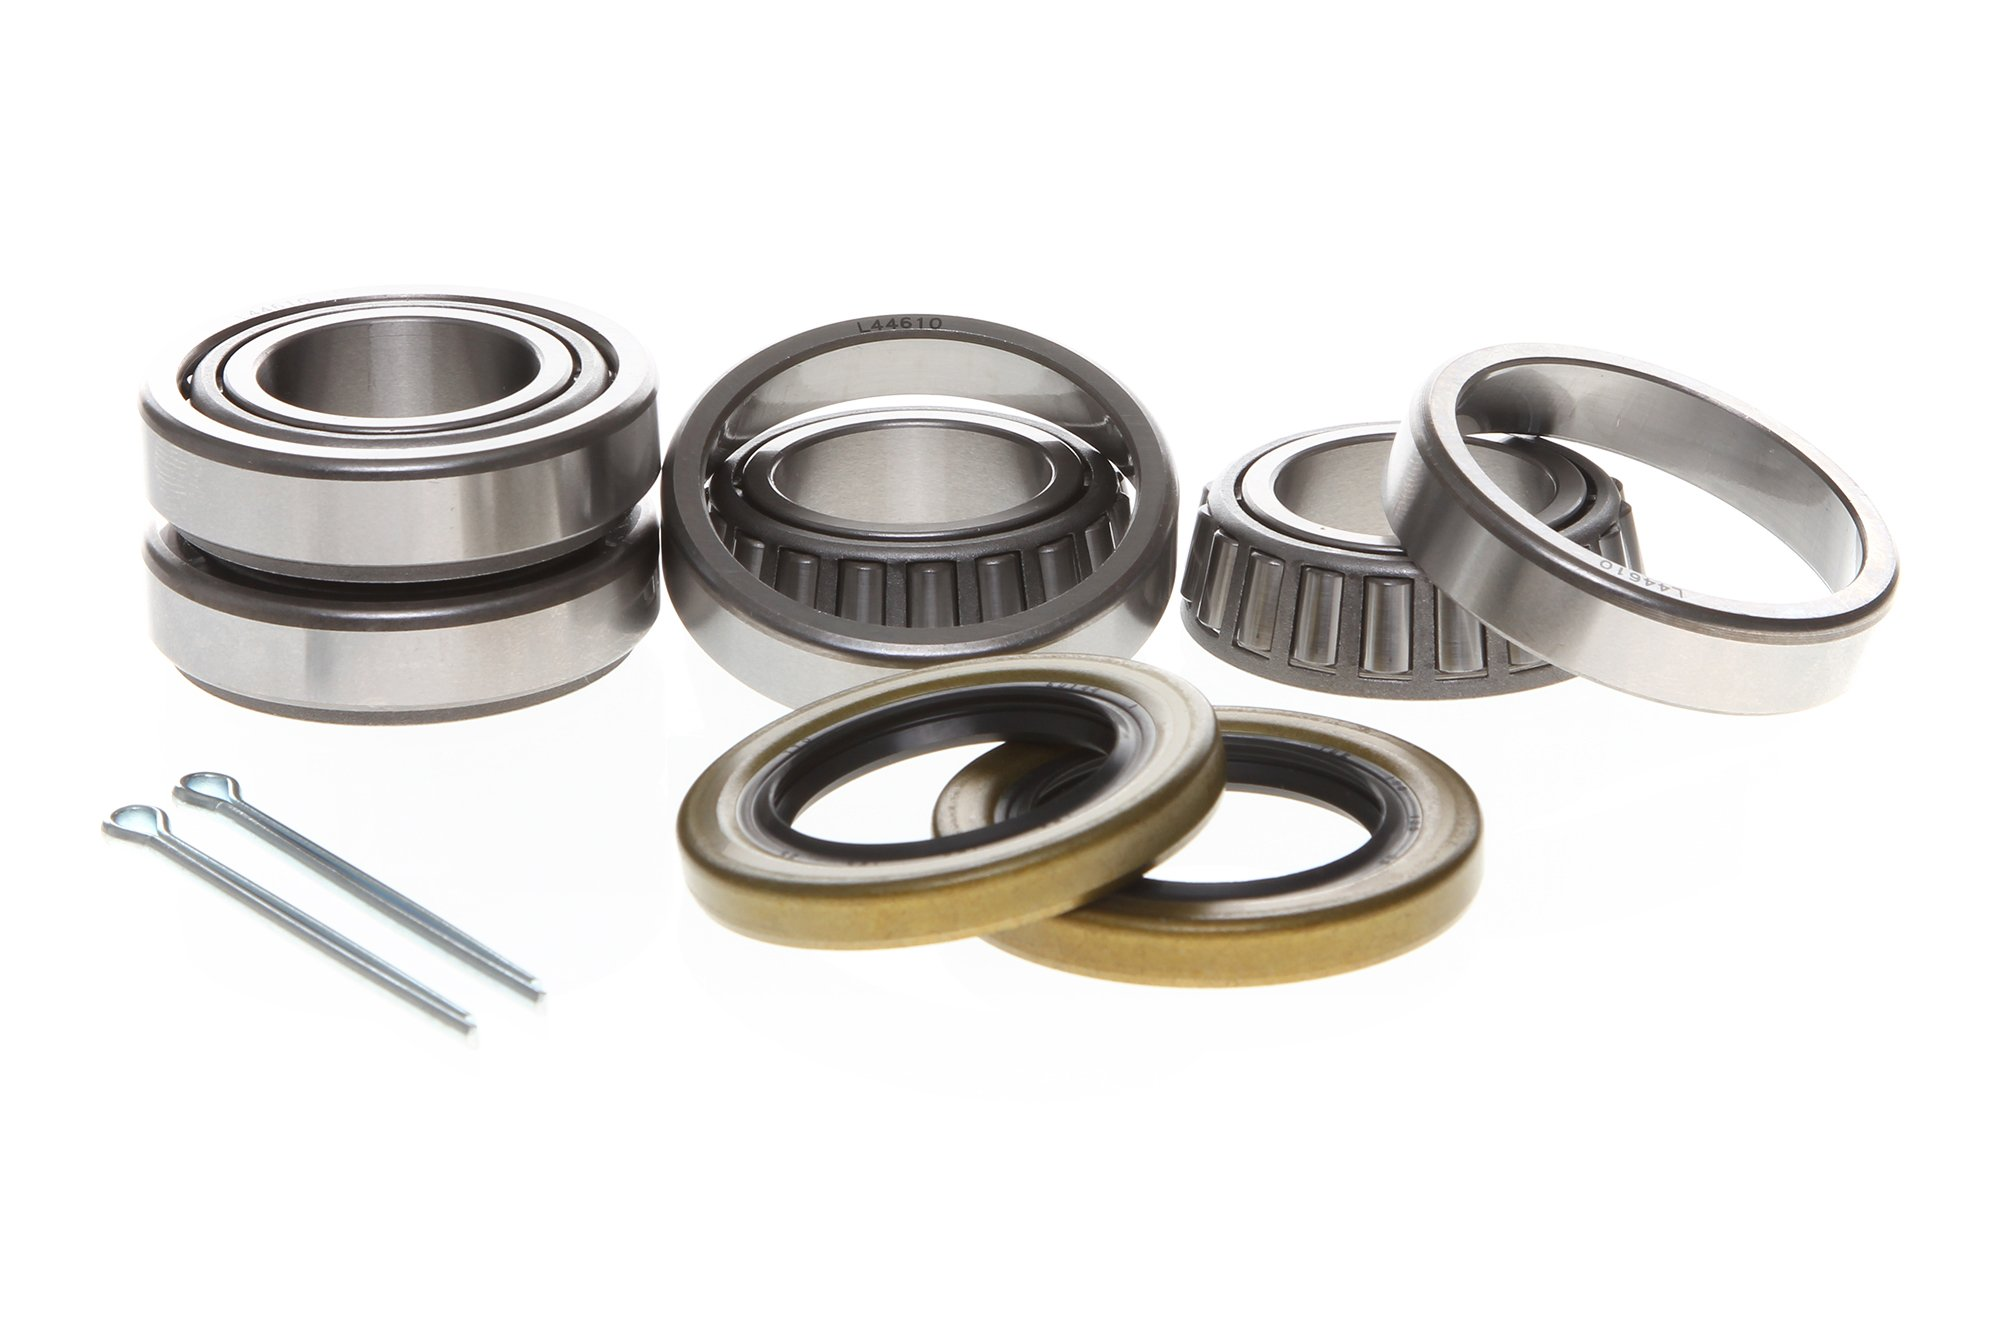 REPLACEMENTKITS.COM - 2 Pack Trailer Bearing & Seal Kit 1 Inch 1.000 Spindles on Axles Rated for up to 2000 lbs. - by REPLACEMENTKITS.COM